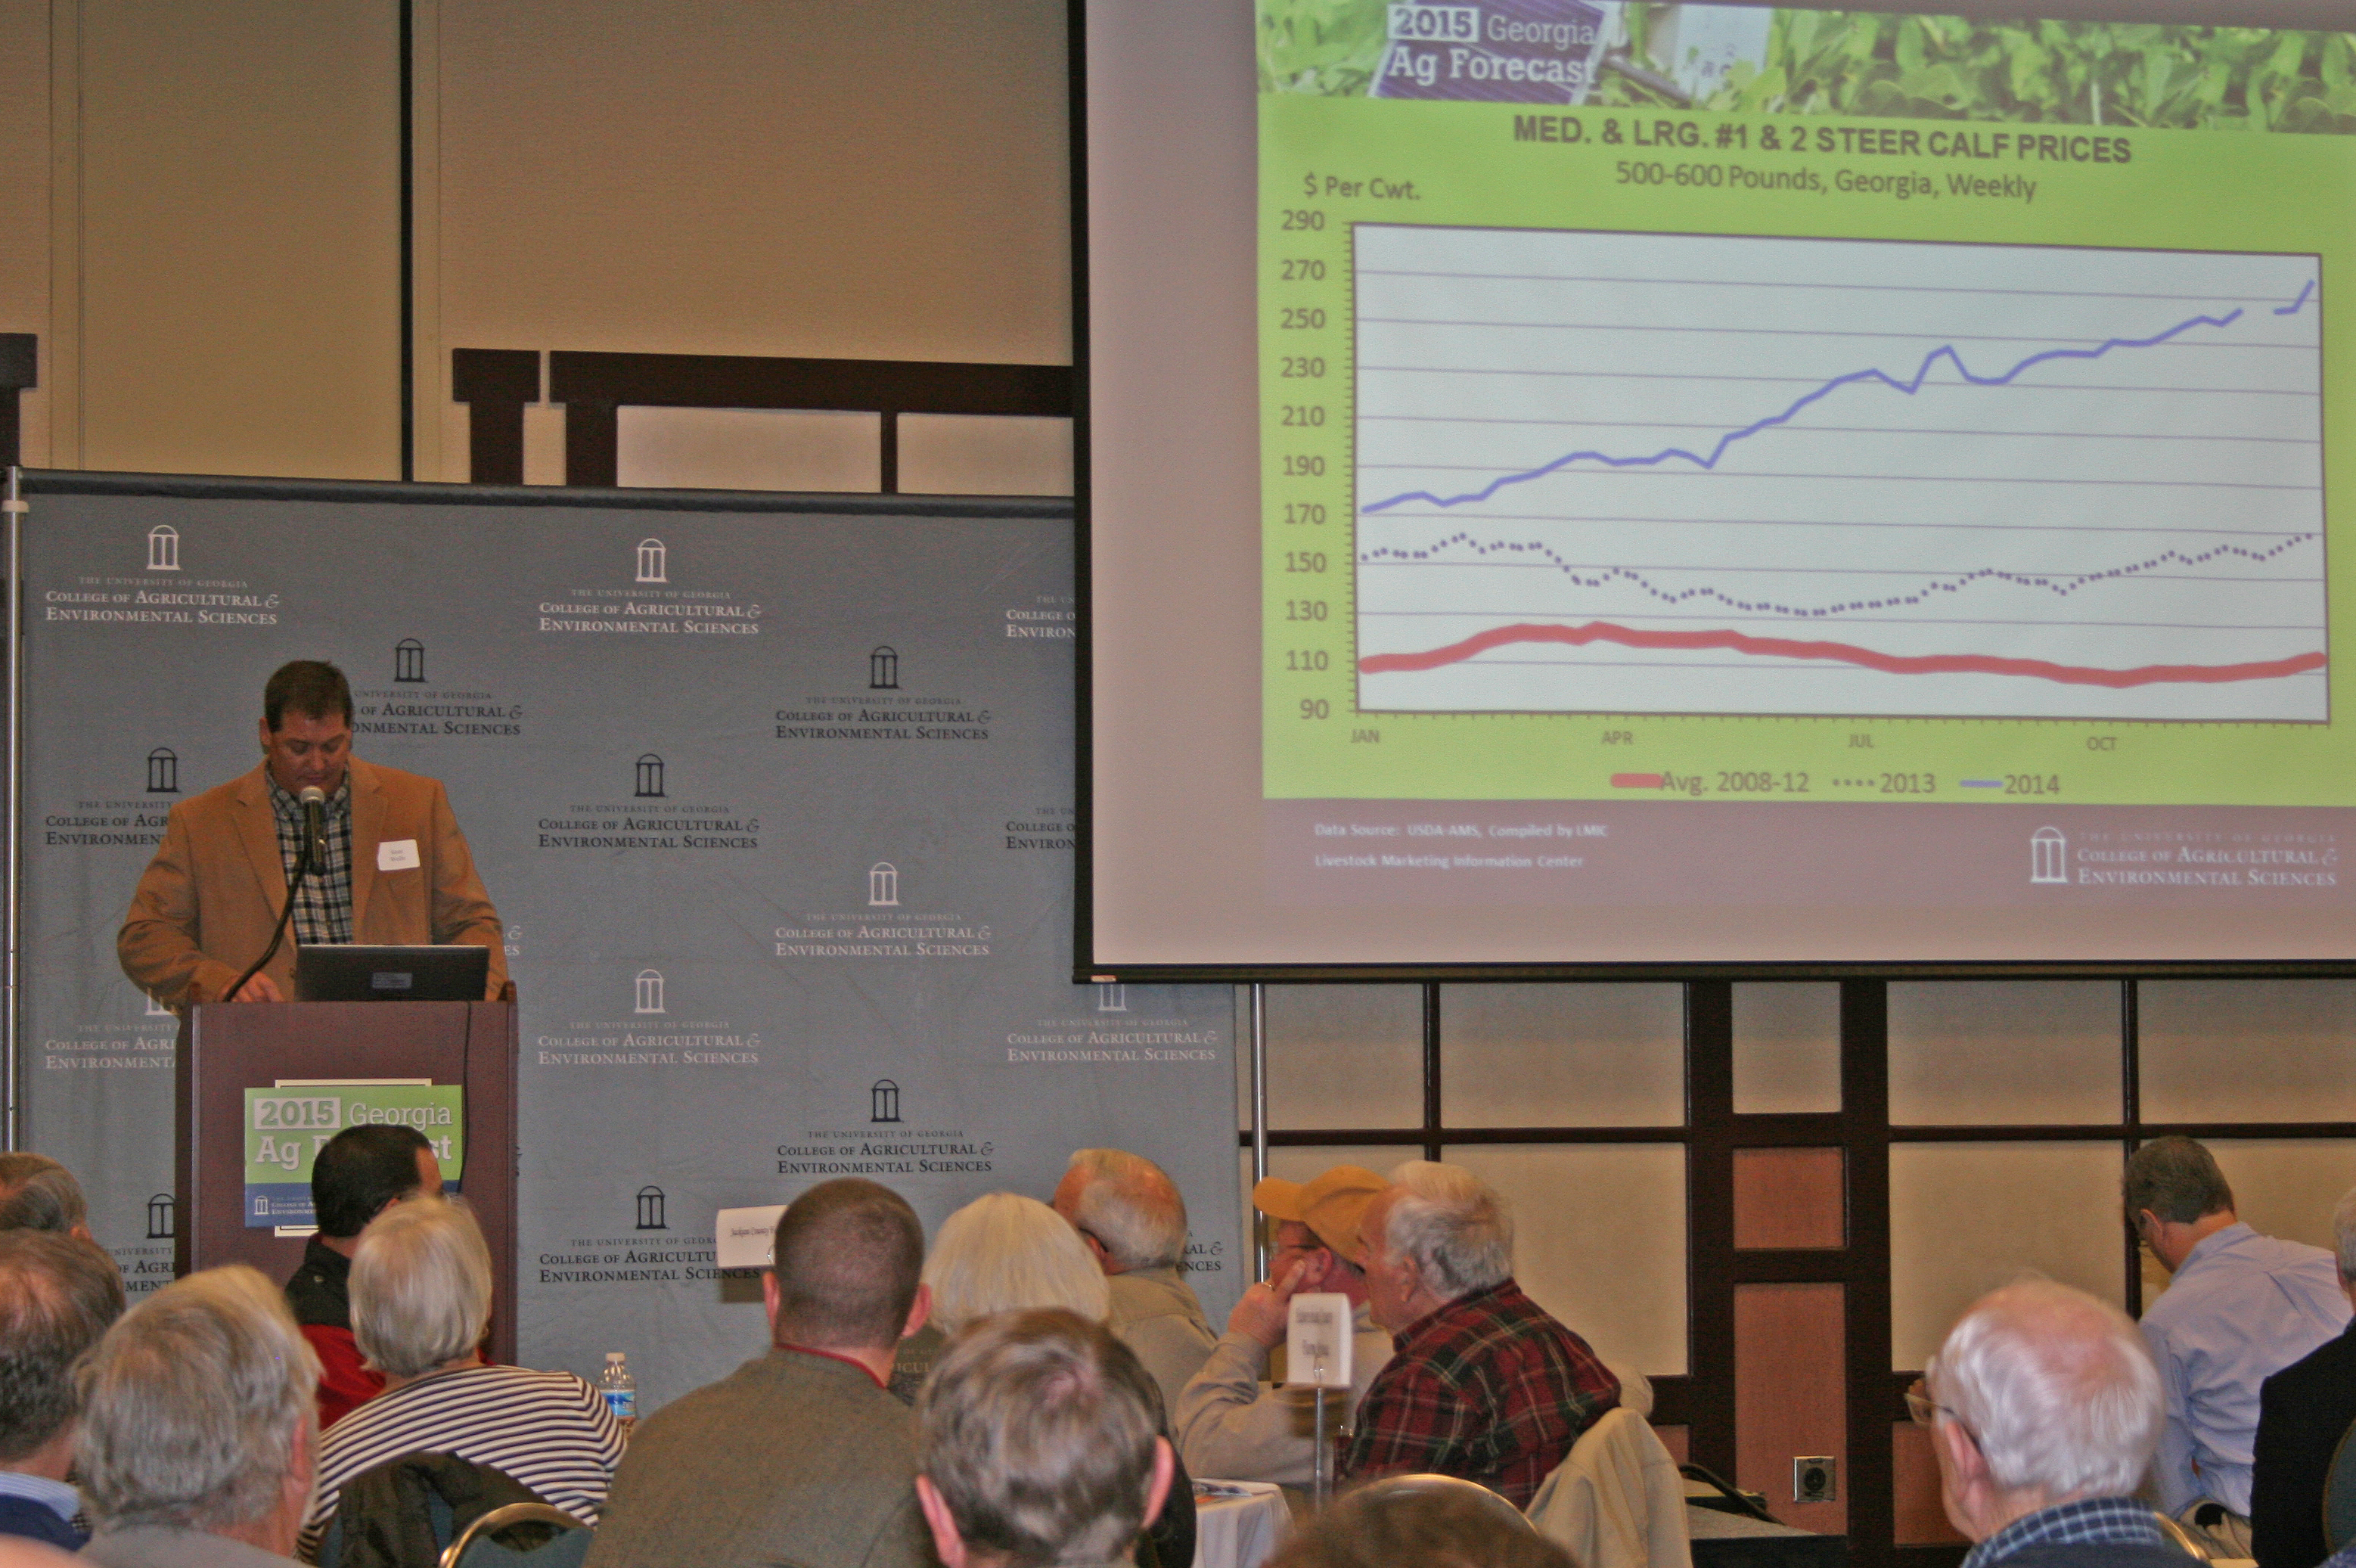 UGA agricultural economist Kent Wolfe, director of the Center for Agribusiness and Economic Development, presents on the future of cattle prices in Georgia at the 2015 Georgia Ag Forecast.